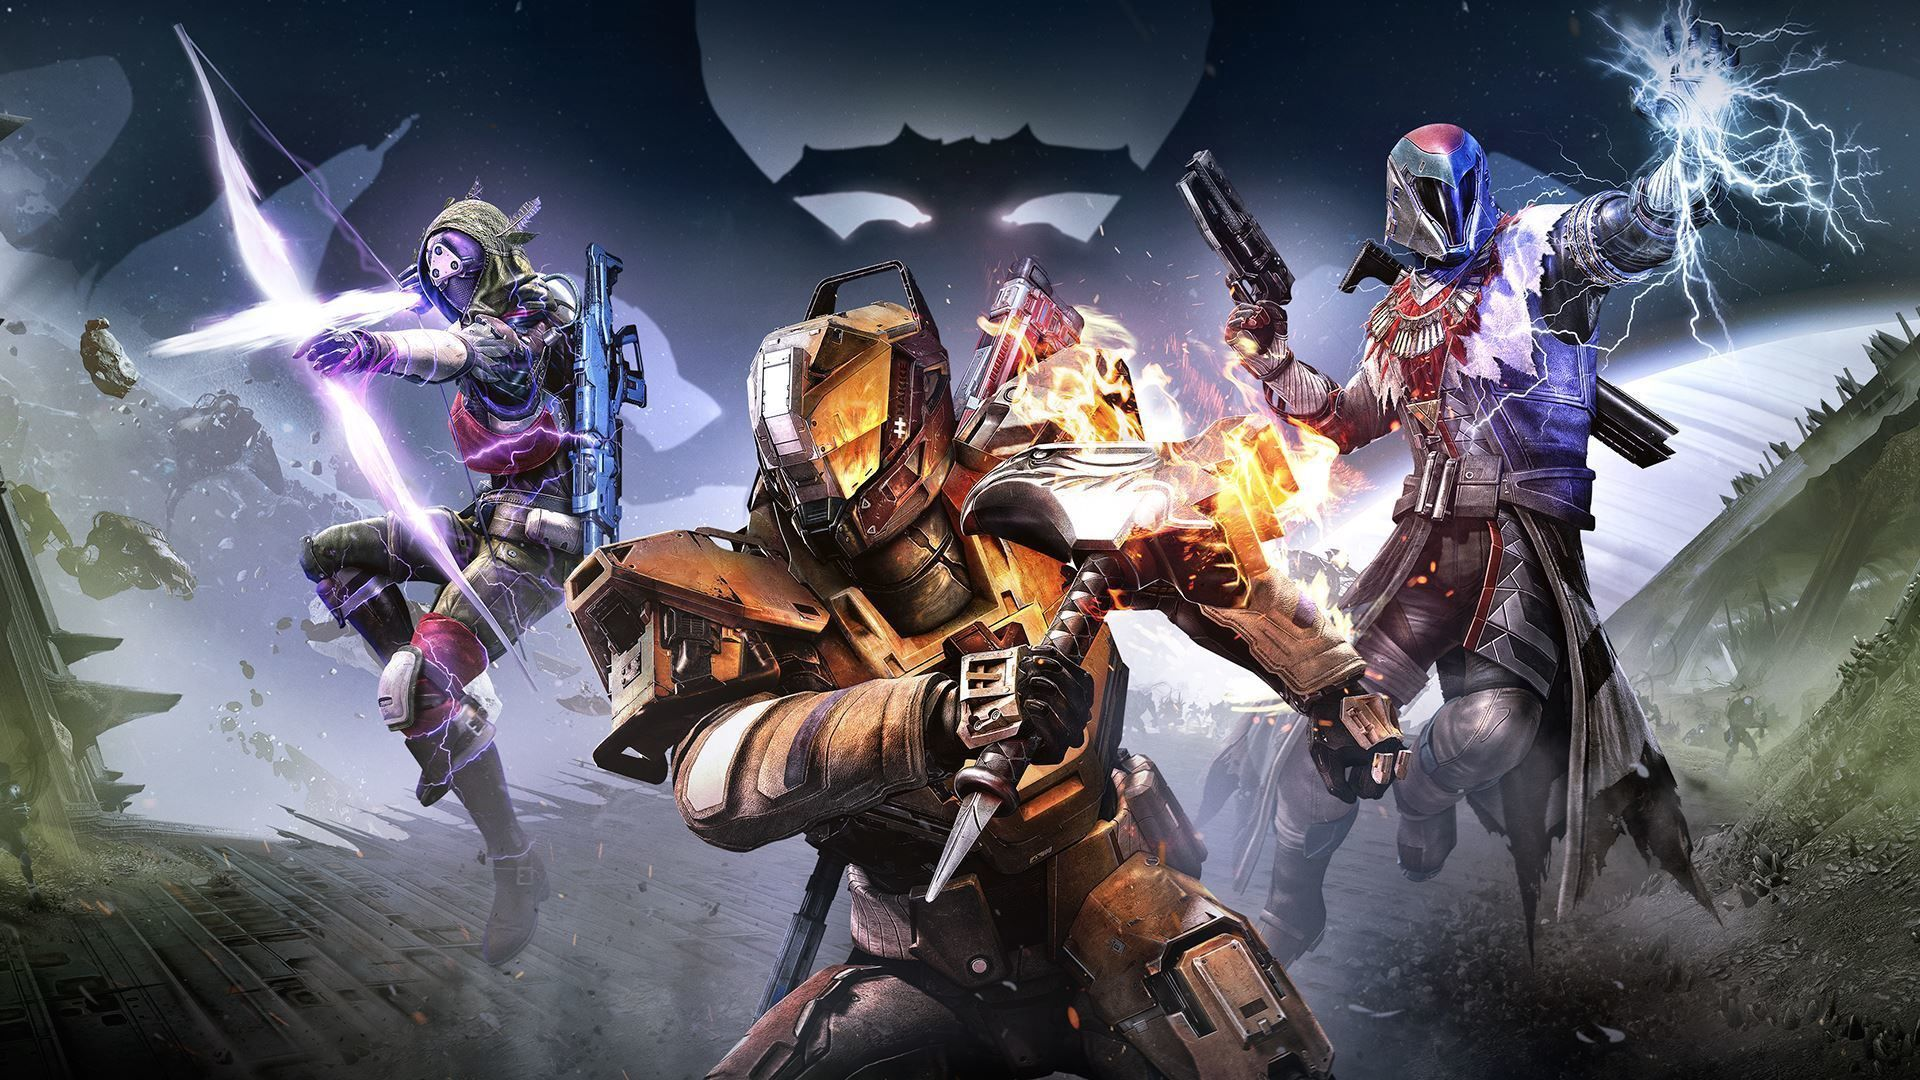 Destiny By Bungie Wallpapers Top Free Destiny By Bungie